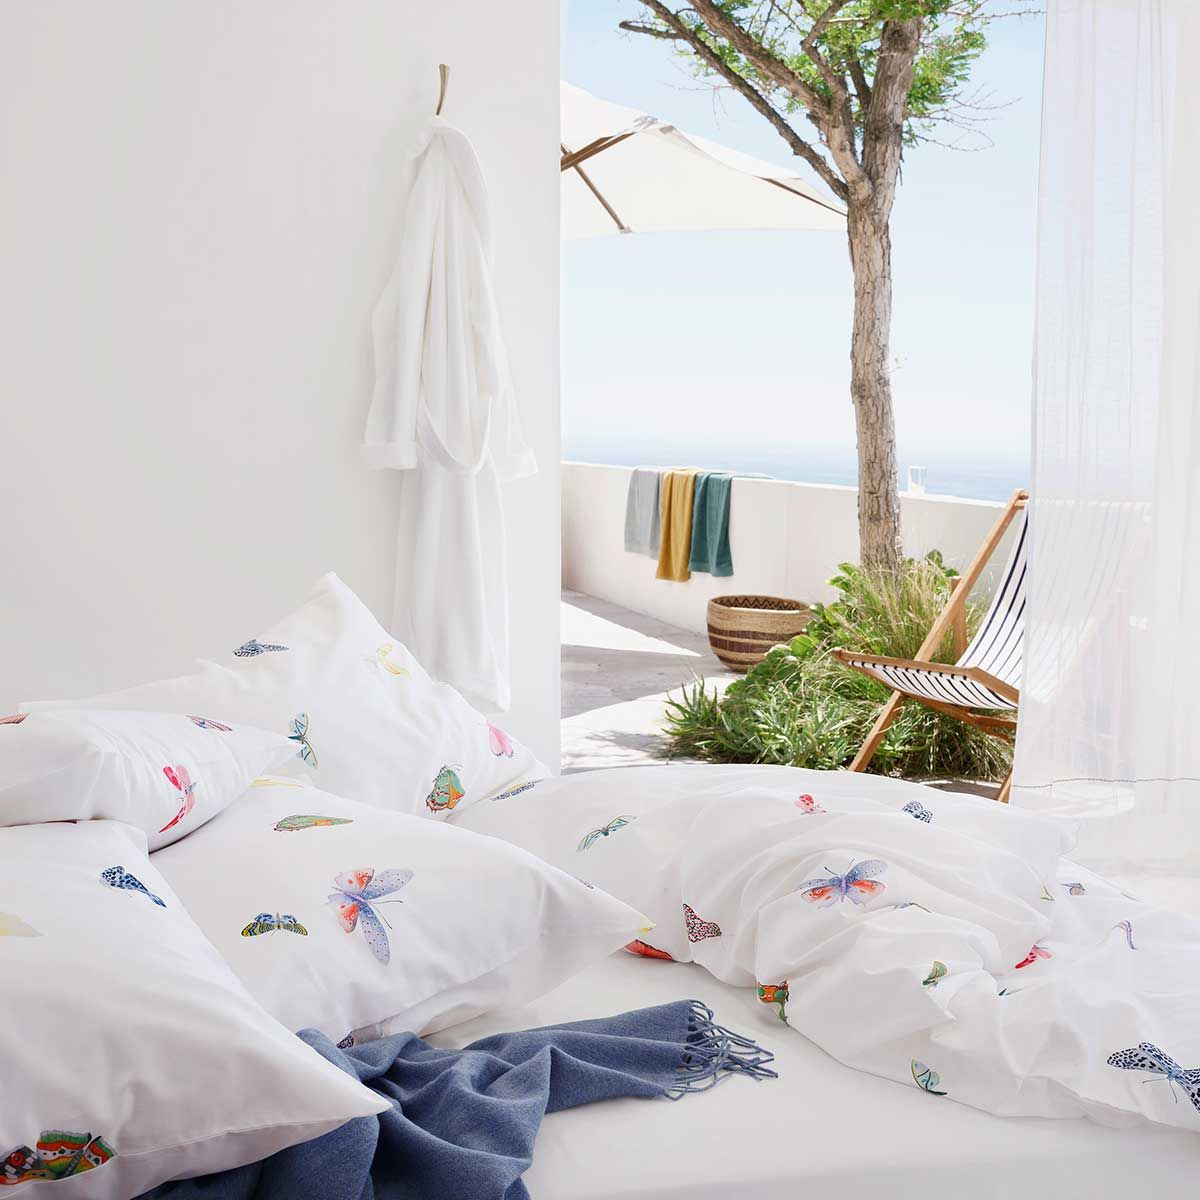 Jil Butterfly Das Bettwäsche Dessin Jil Wird Von Bunt Gezeichneten Schmetterlingen Und Nachtfaltern G Bed Linens Luxury Bed Linen Sale Super King Duvet Covers